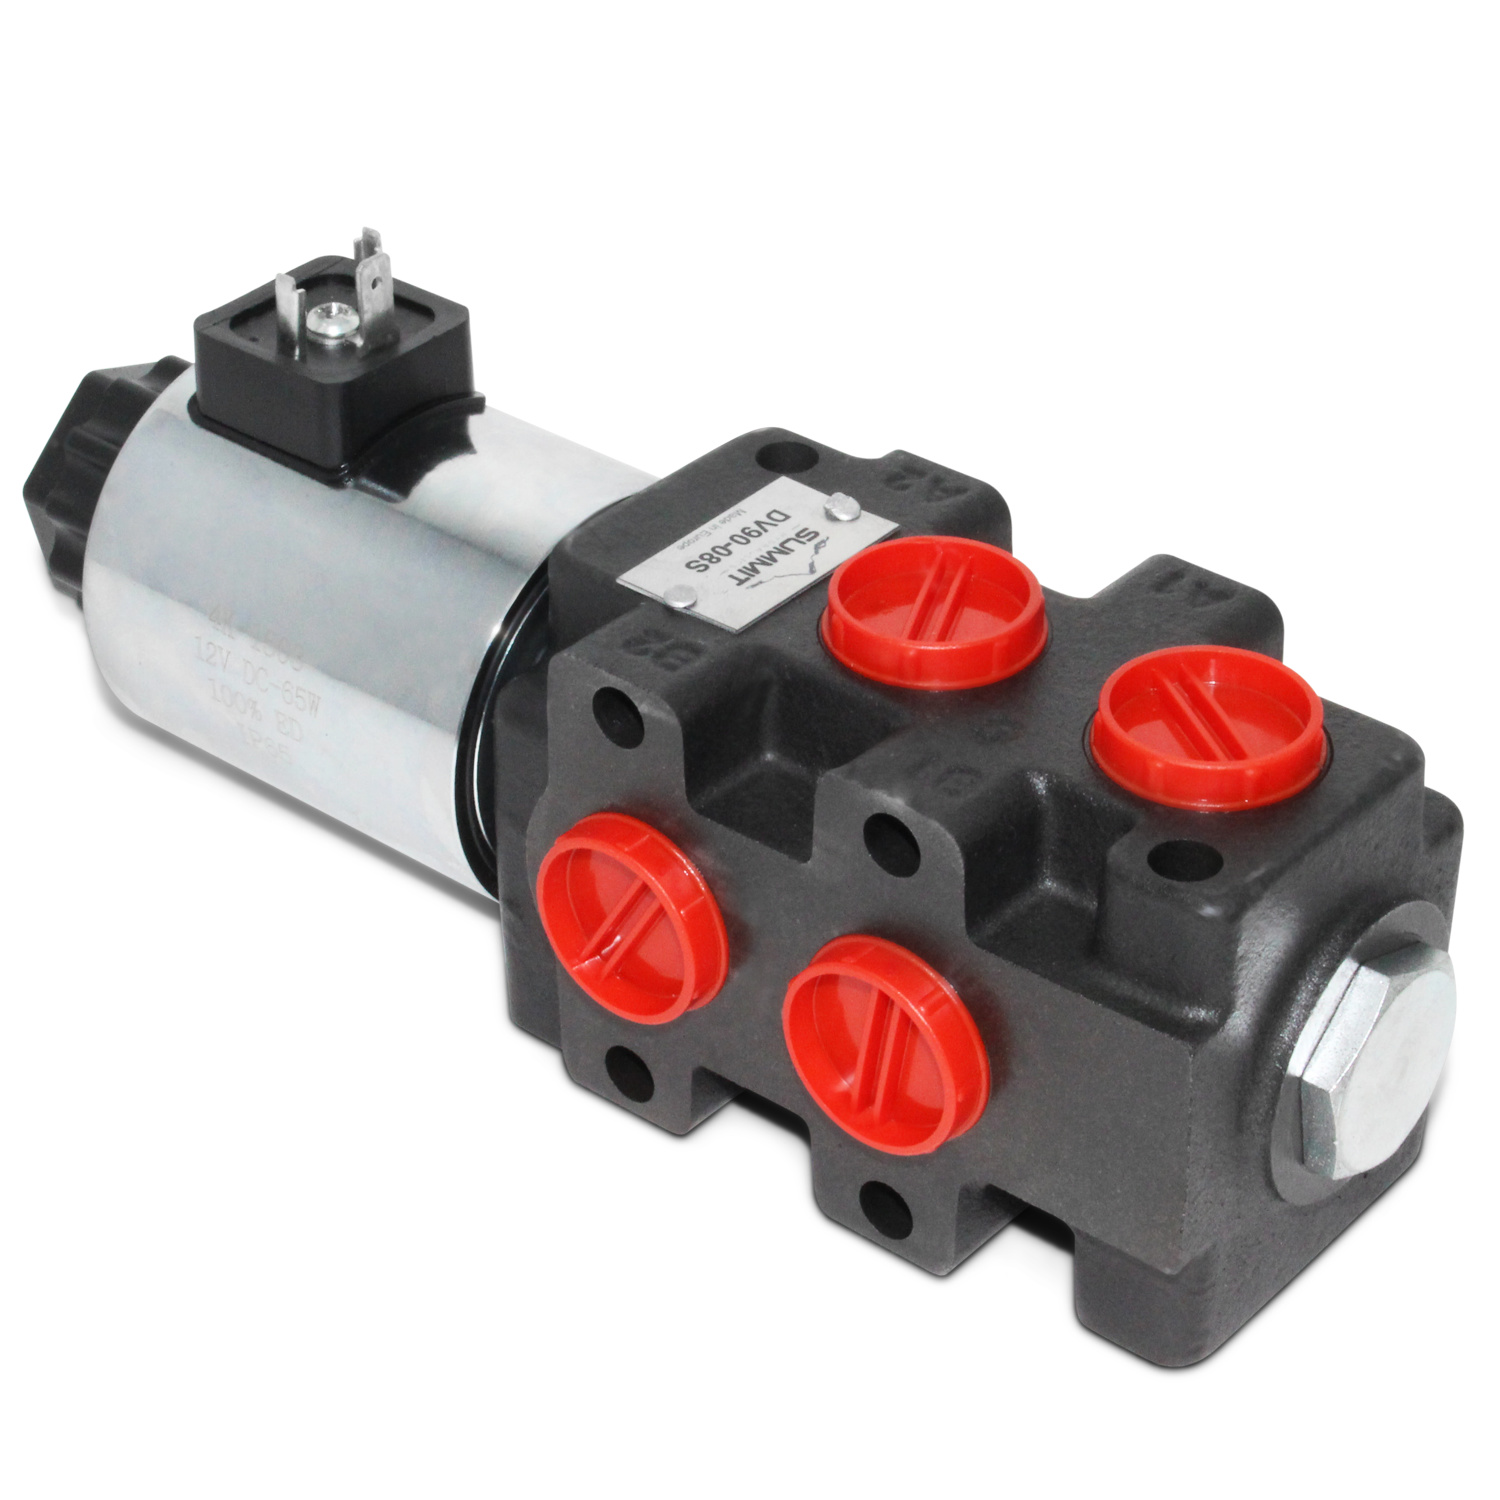 12v Hydraulic Selector Valve : Hydraulic multiplier selector diverter valve w switch gpm